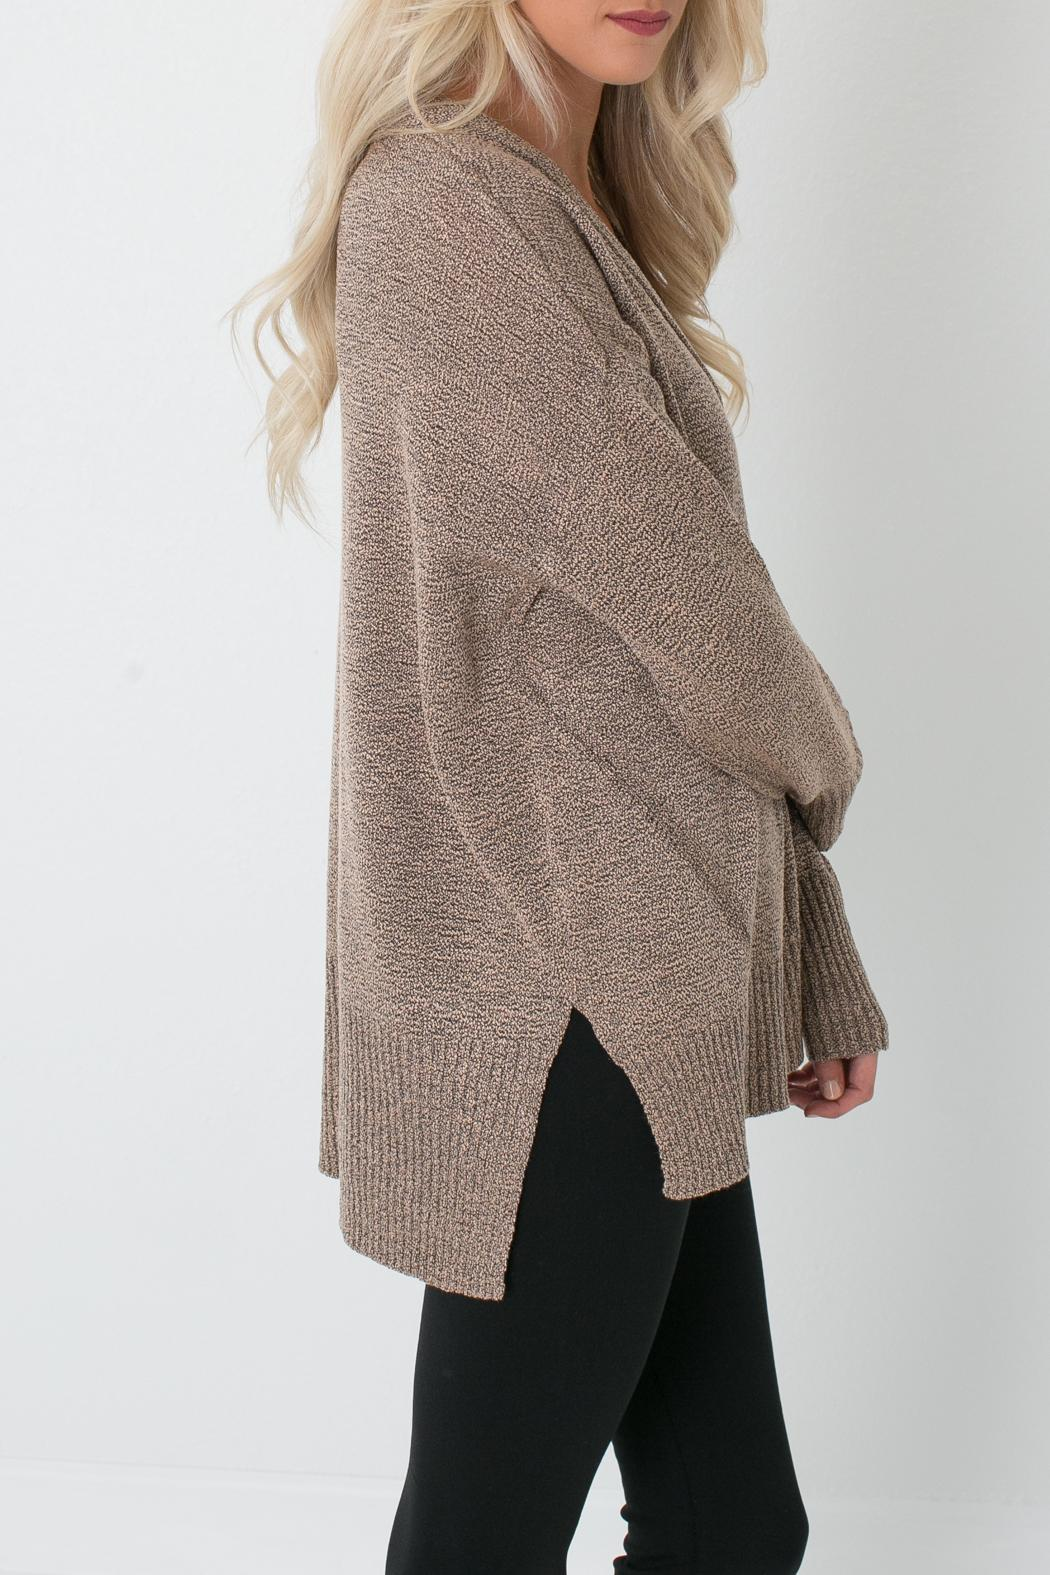 13bf337dca8 Lush Knit V-Neck Sweater from Colorado by Apricot Lane - Centennial ...